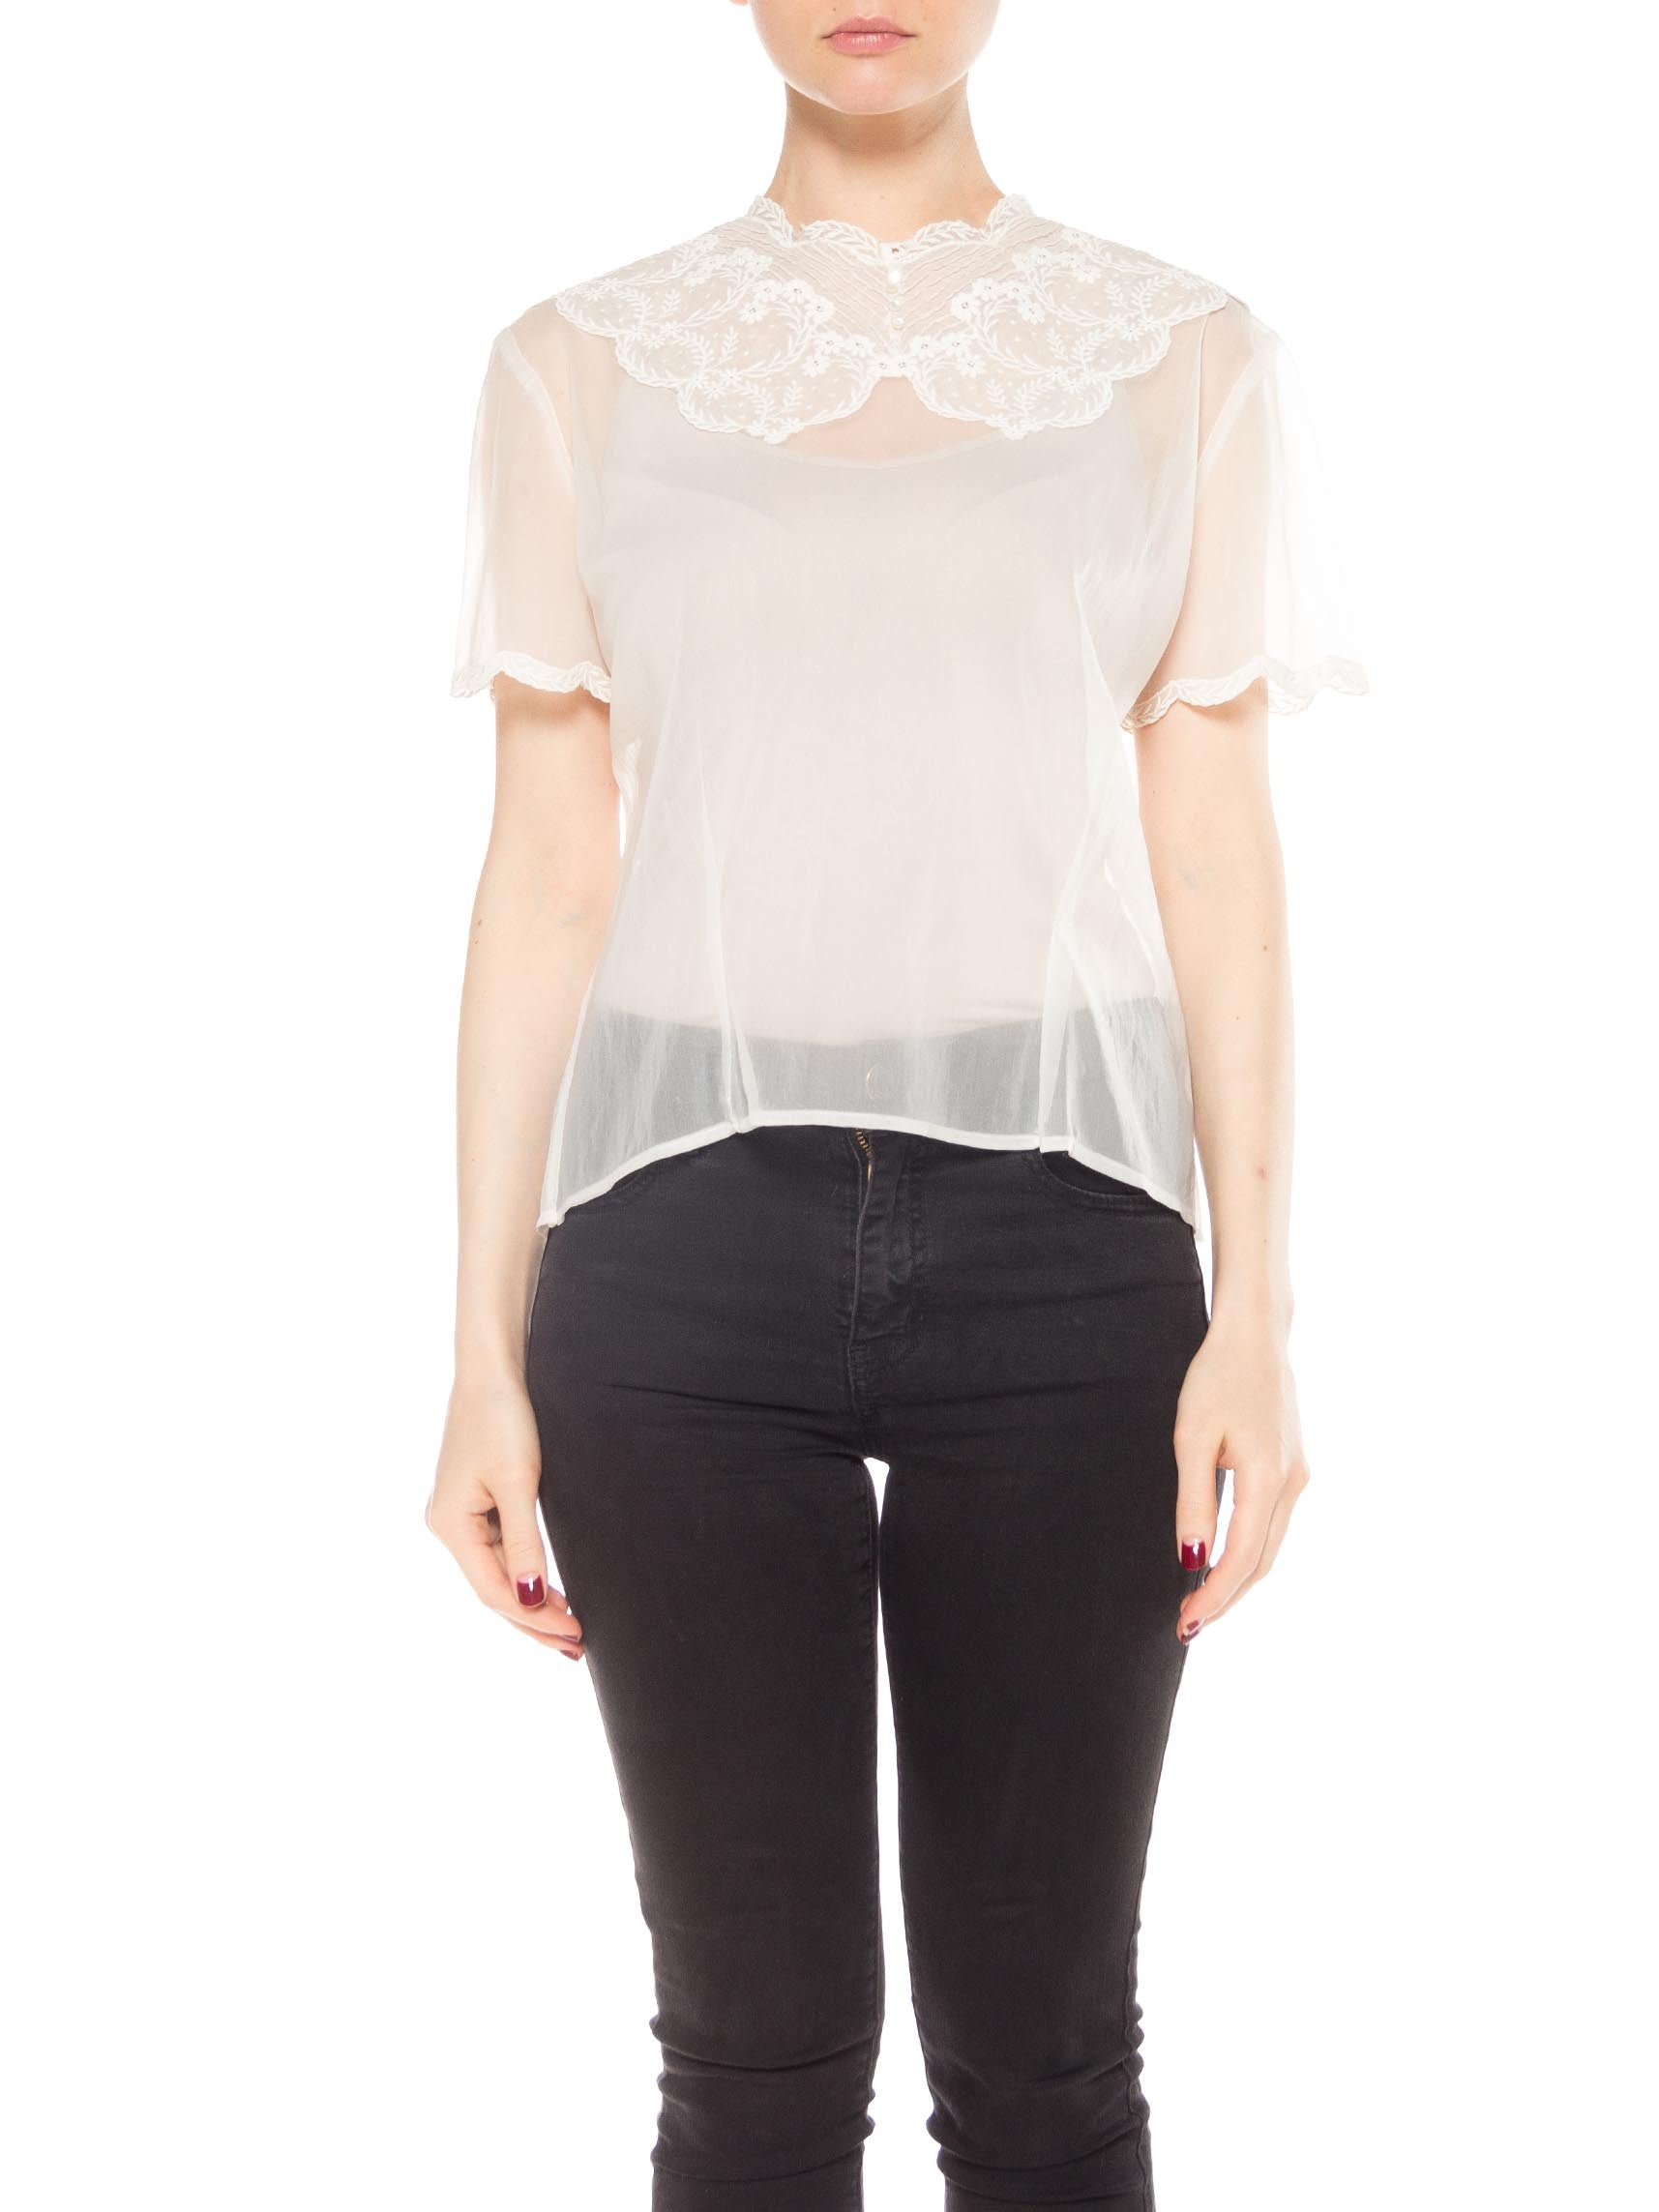 White Short Sleeve Nylon Top with Lace at Neck and Sleeves